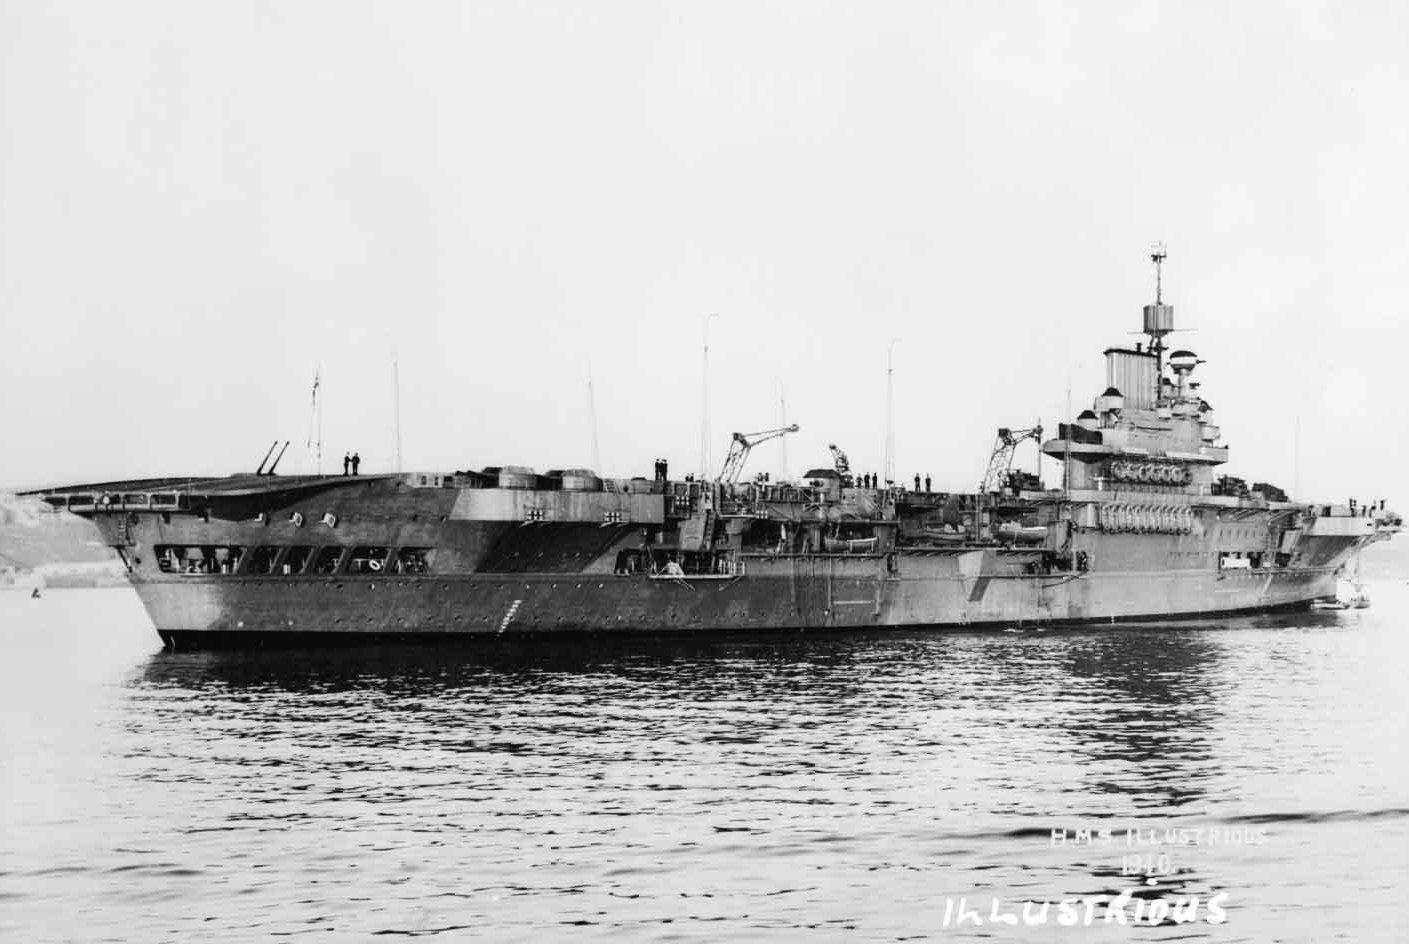 A newly completed HMS ILLUSTRIOUS in Plymouth Sound, June 1940. Note the port-side aft 4.5in turret, with guns elevated and aimed over the aft flight deck.